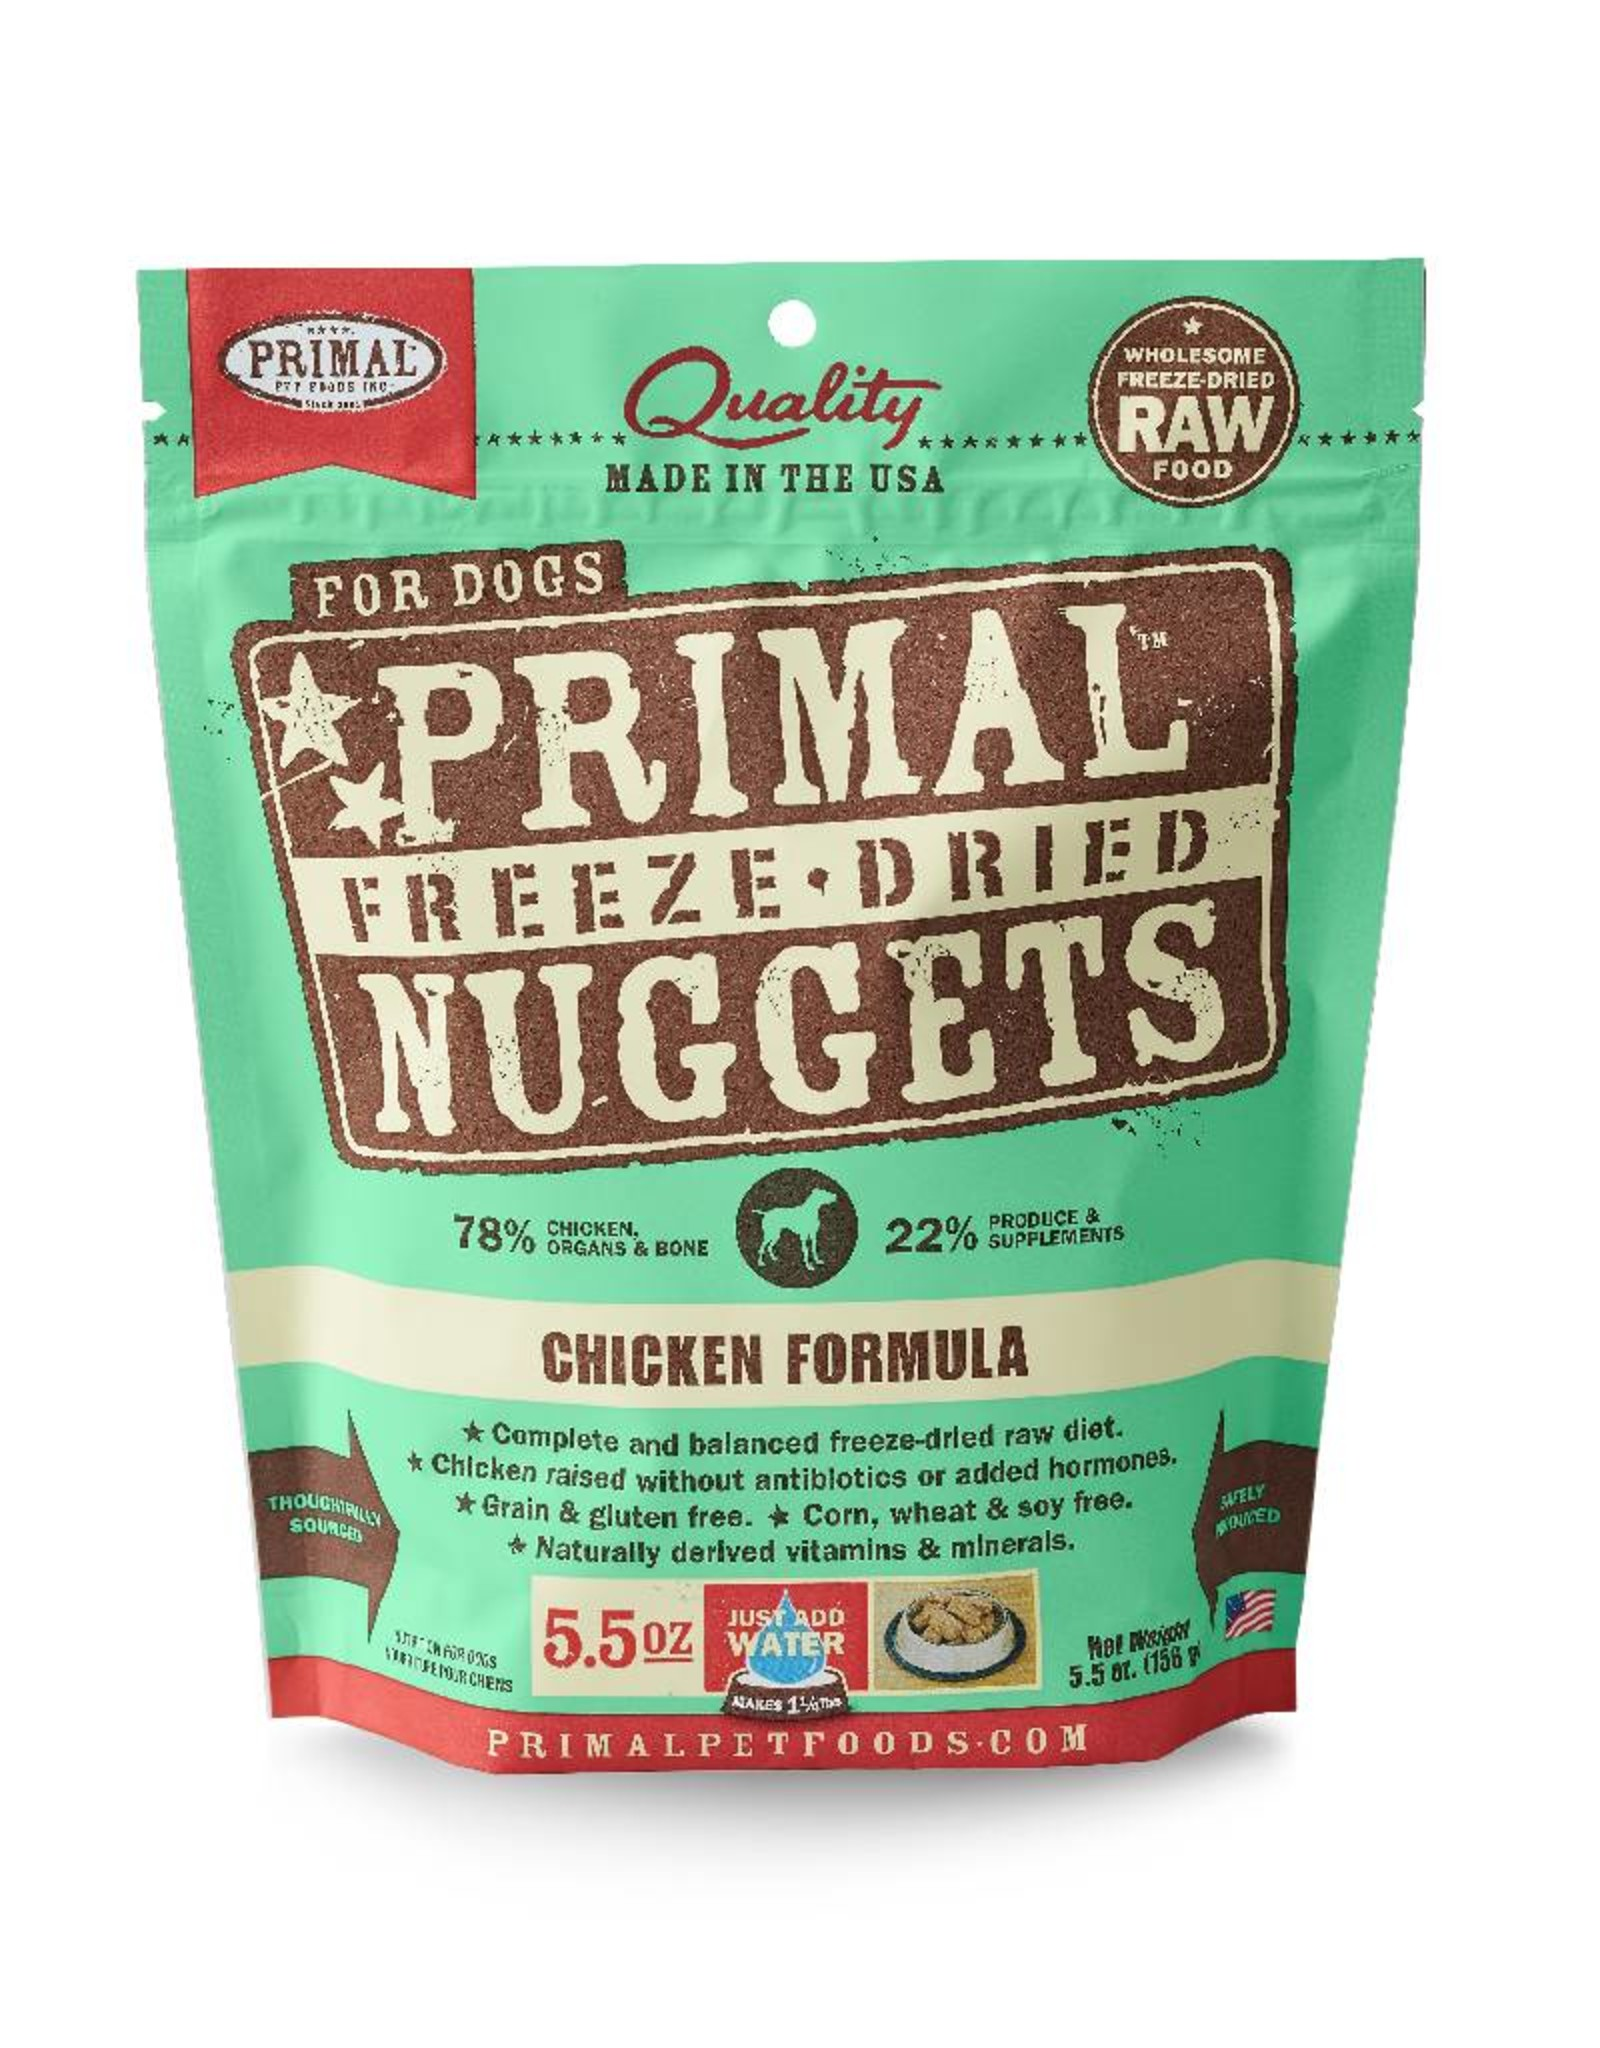 PRIMAL PET FOODS Primal | Freeze Dried Nuggets Canine Chicken Formula